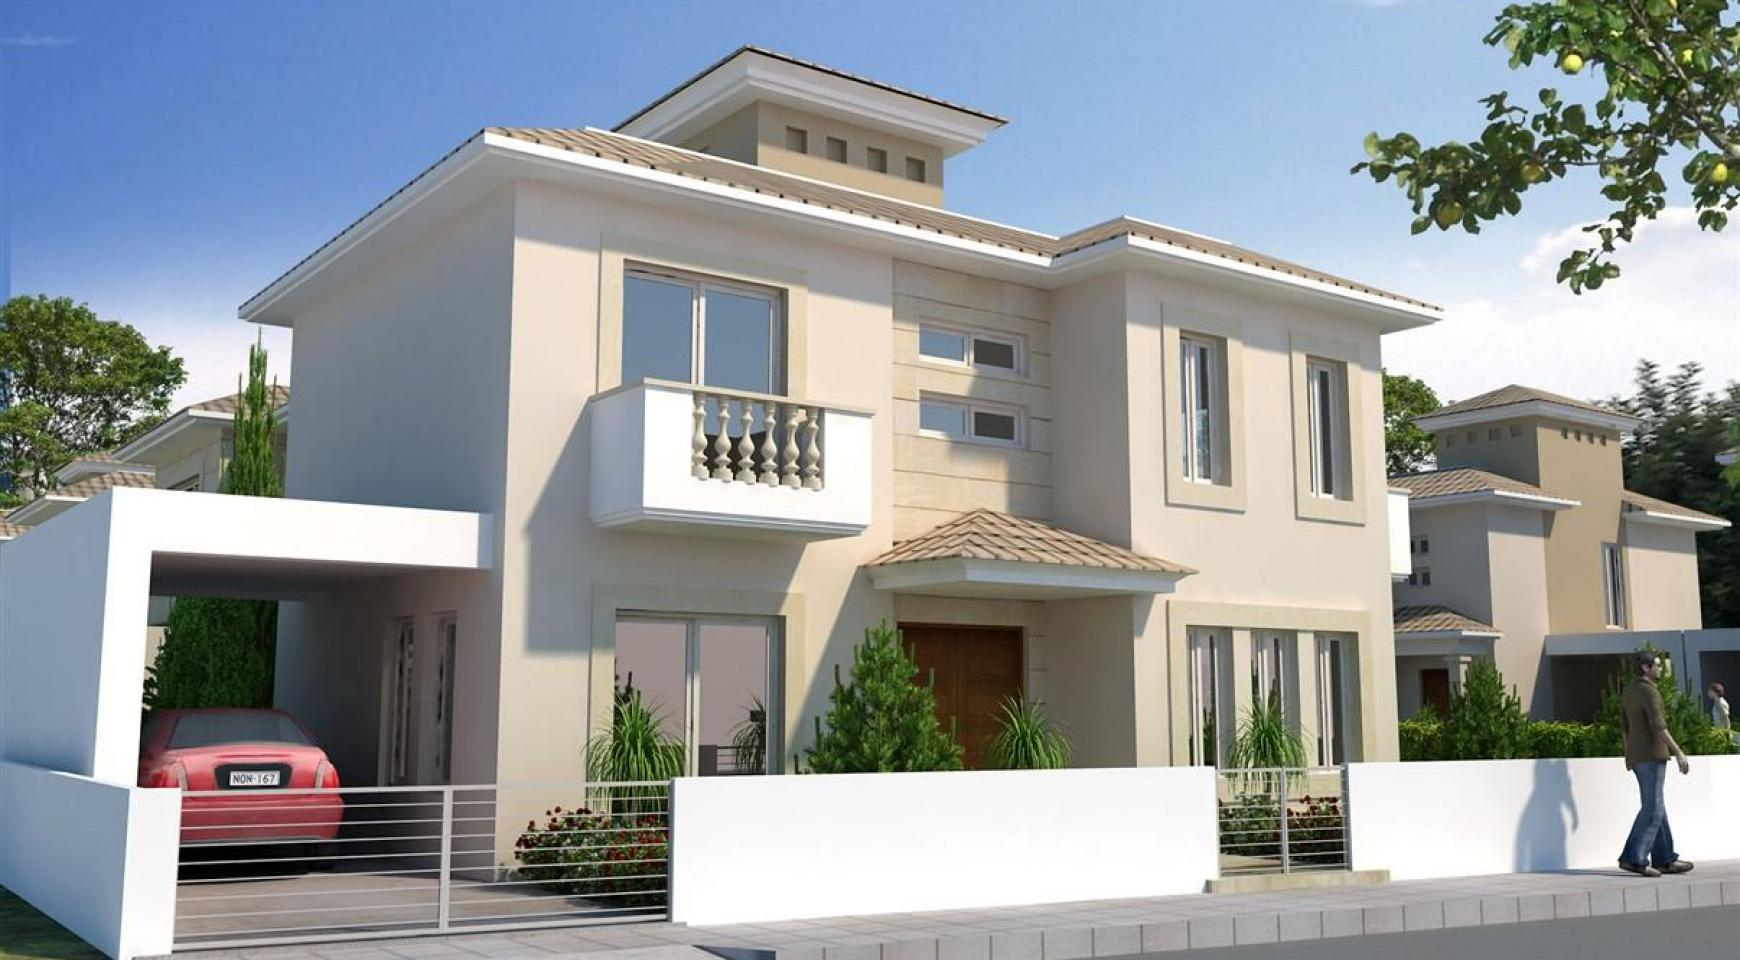 3 Bedroom Villa in New Project in Paphos - 11